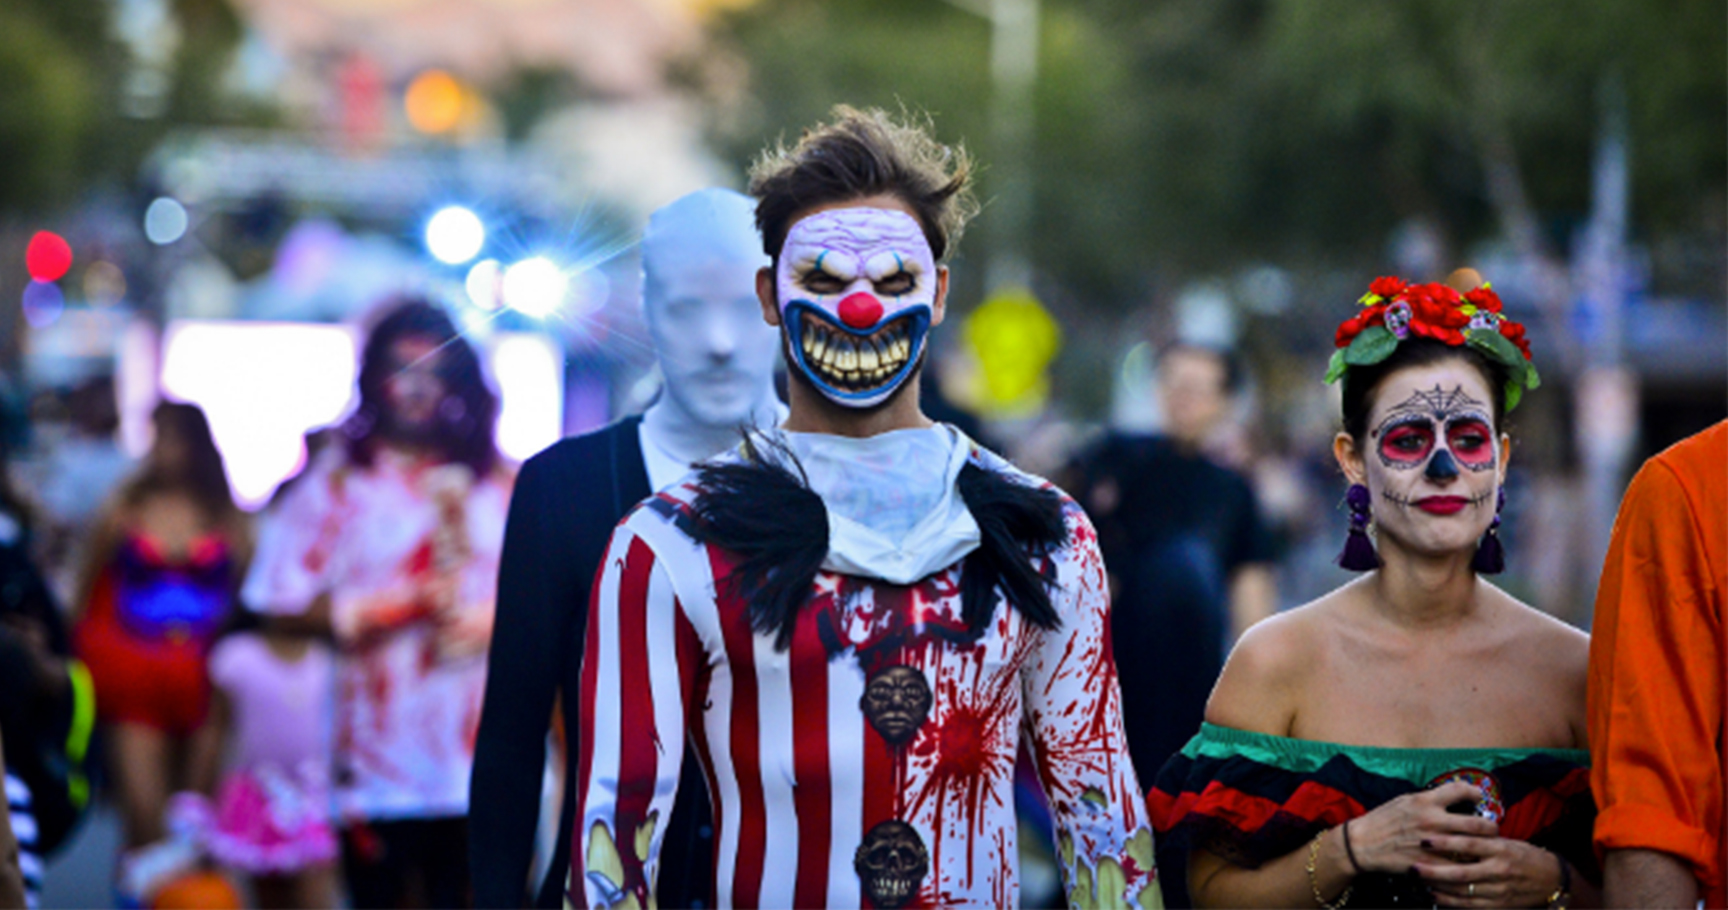 Of The Most Iconic Halloween Street Parties In The World